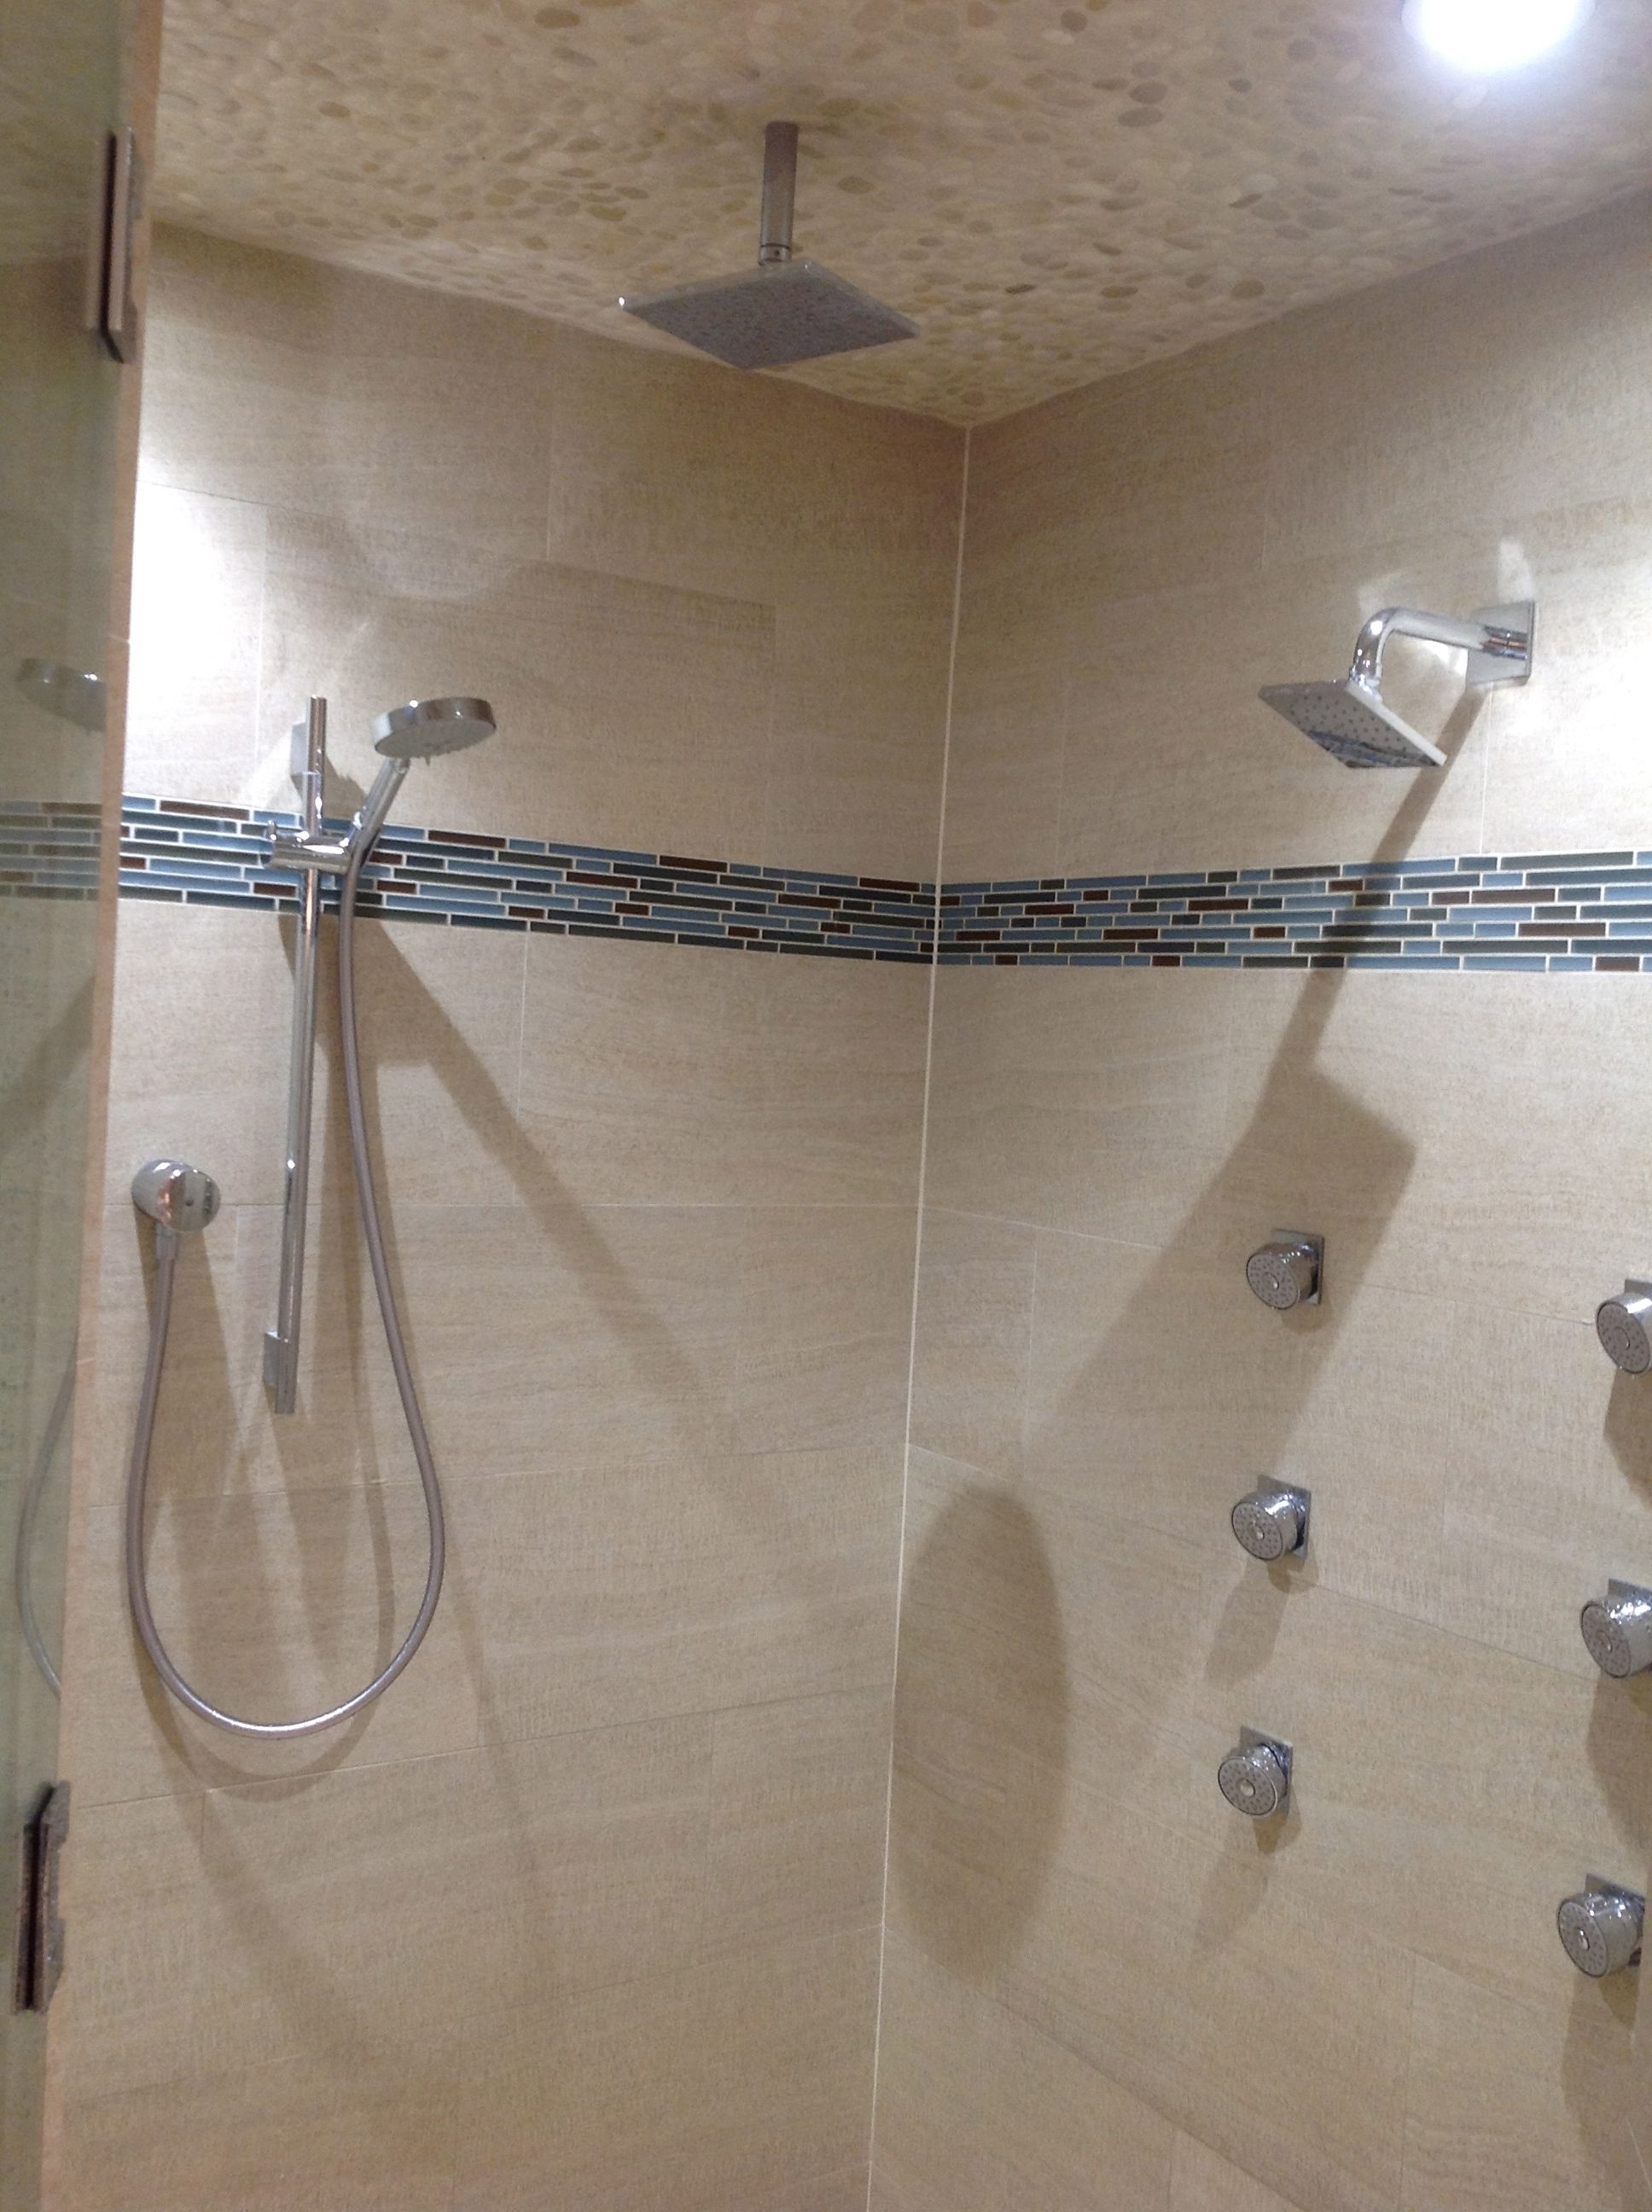 Steam Rain Shower Body Sprays And Two Shower Heads Make The